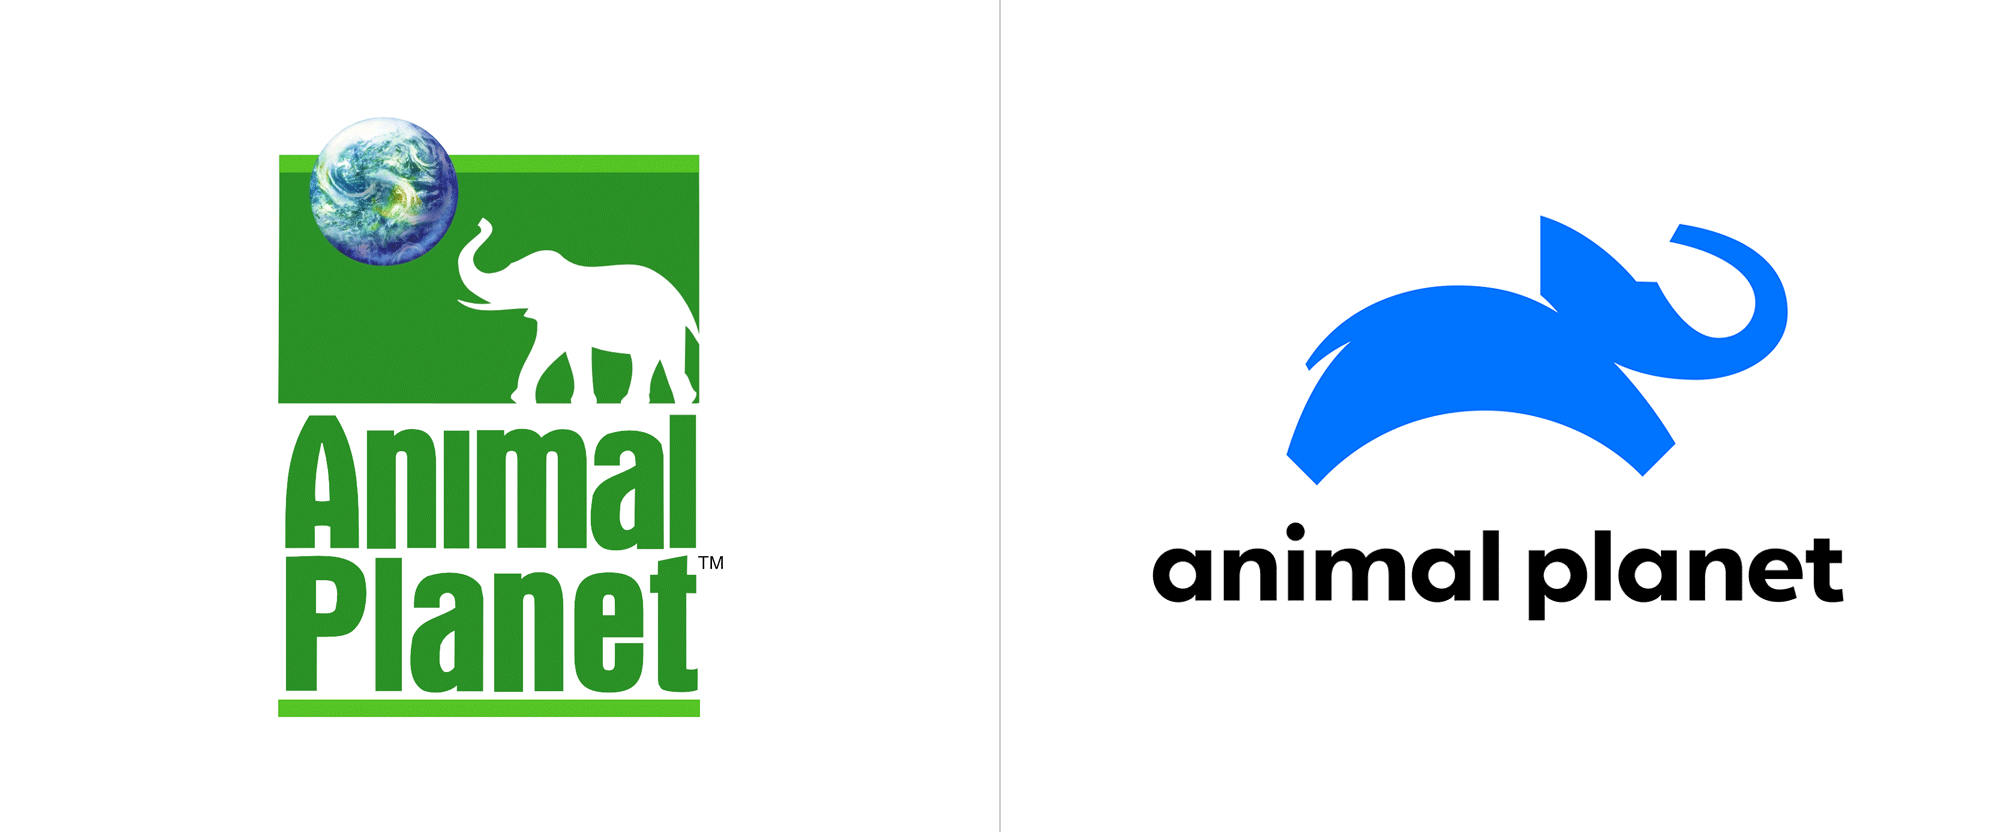 Brand New: New Logo for Animal Planet by Chermayeff